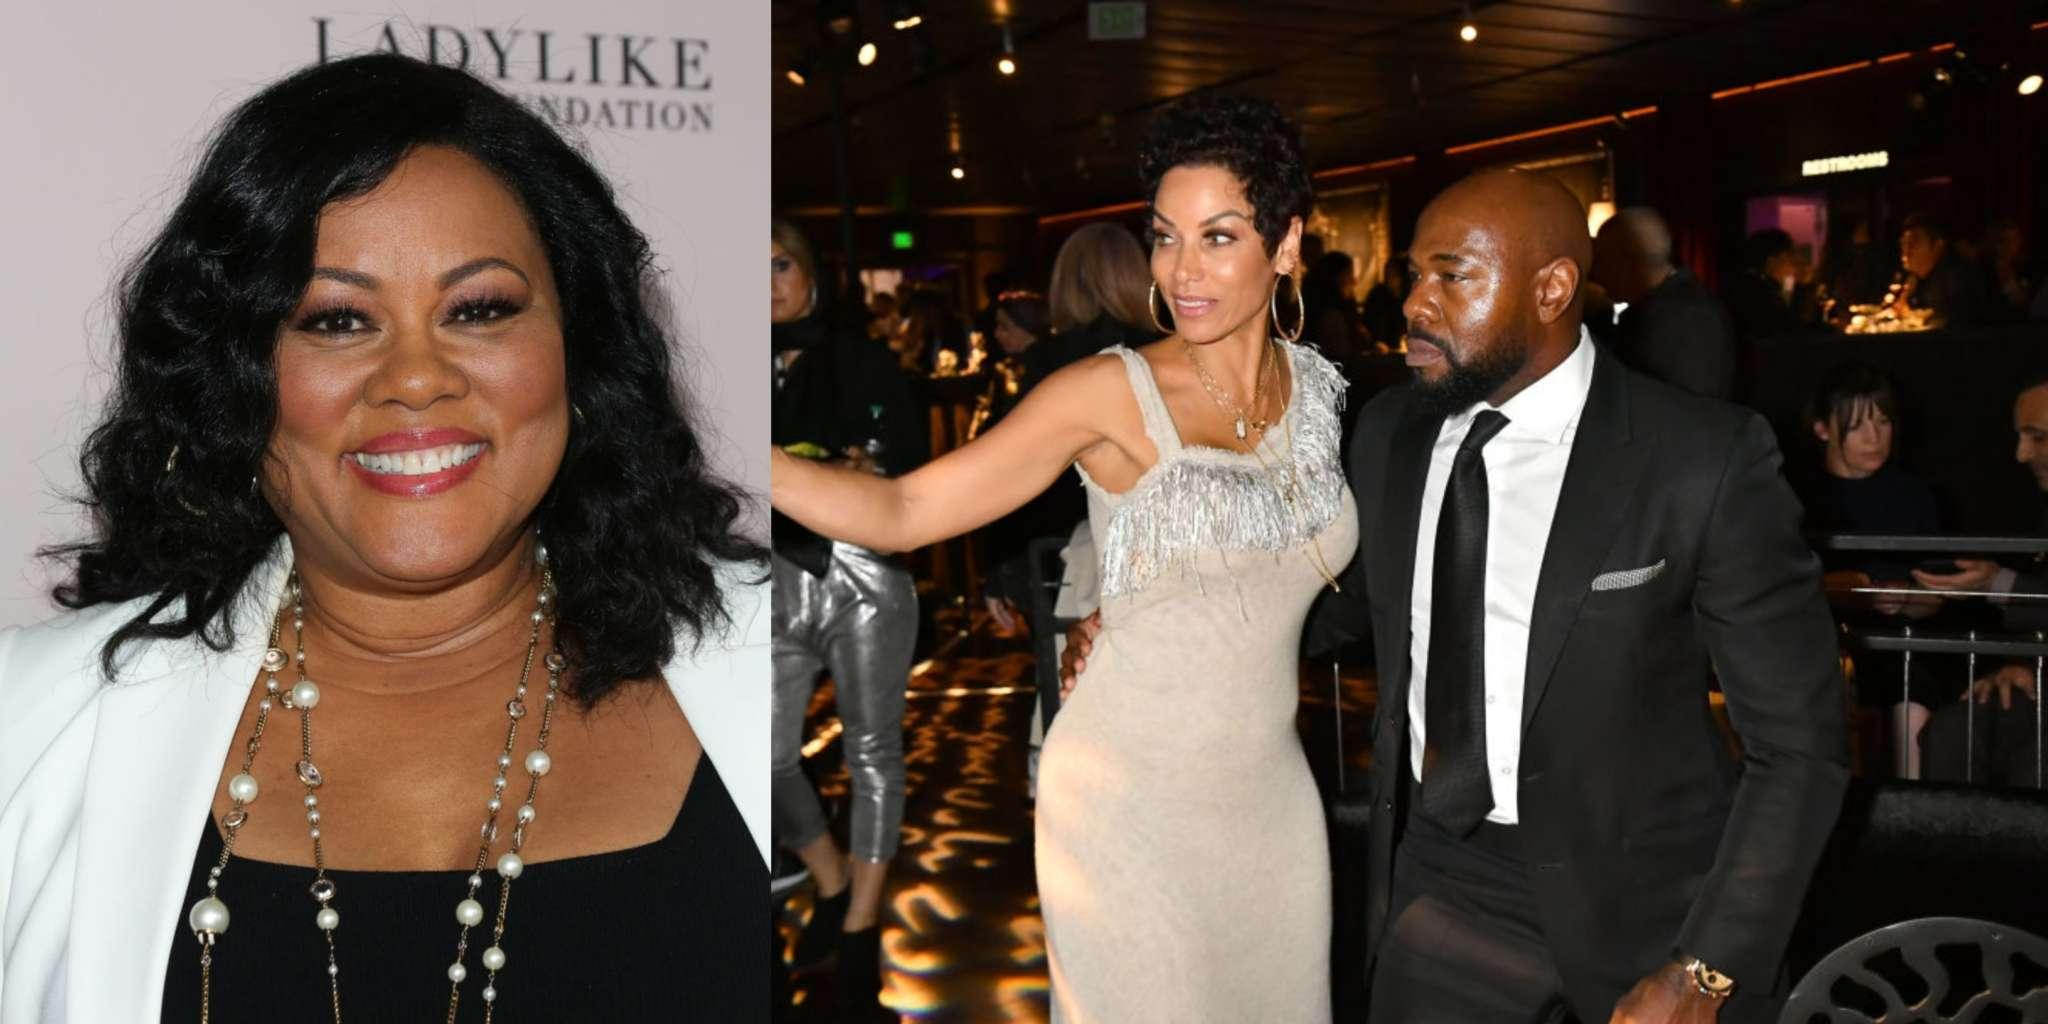 Nicole Murphy Has Been Photographed Kissing Director Antoine Fuqua Who Is Married - She Addresses The Photos, Saying That They Are Just 'Family Friends'